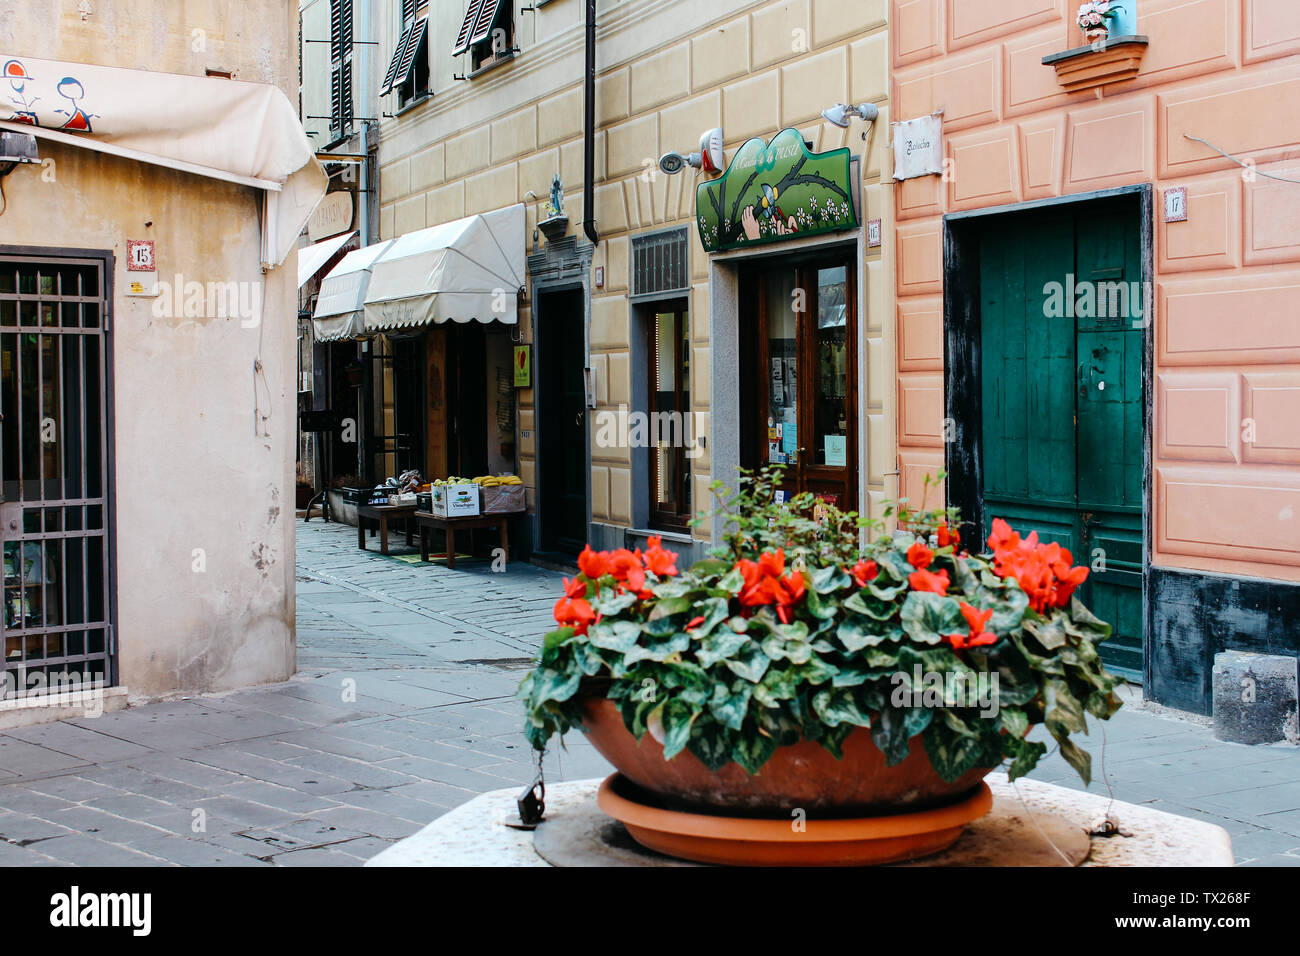 Rapallo, Italy - 03 27 2013: flowers in the pot. View of the streets of Rapallo. - Stock Image